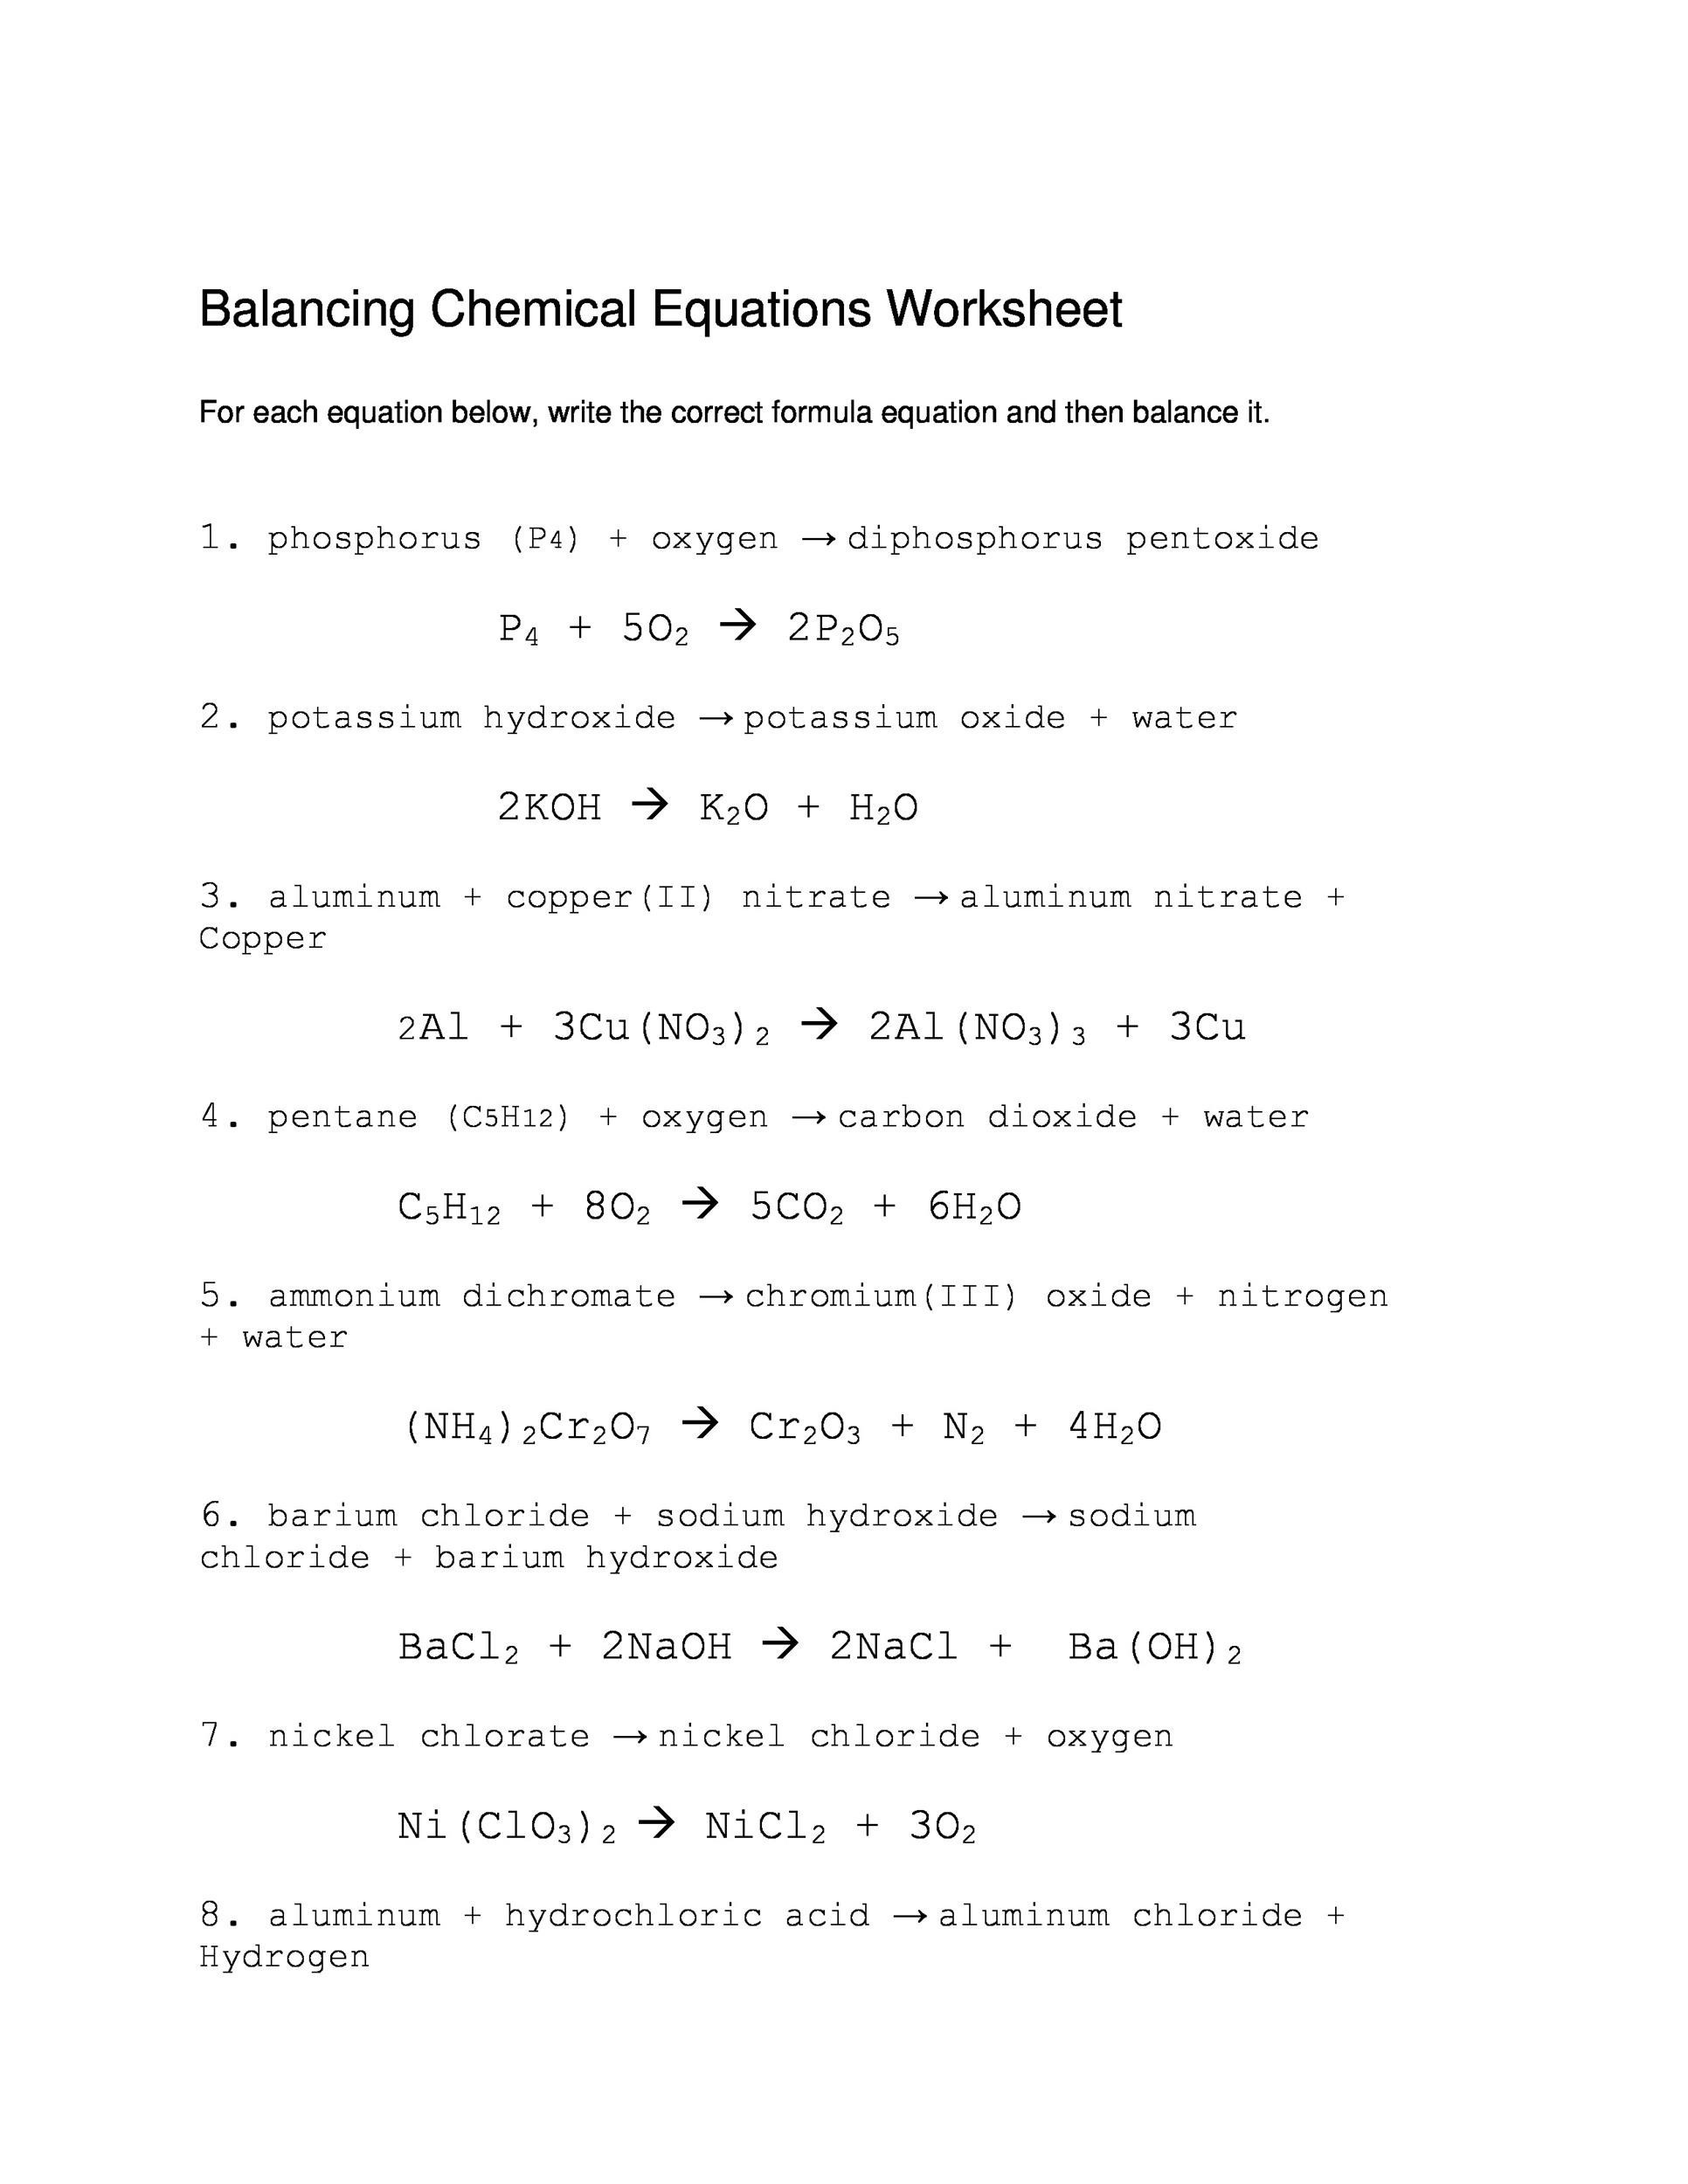 Balancing Chemical Equations Practice Worksheet With Answers – Balancing Equations Chemistry Worksheet